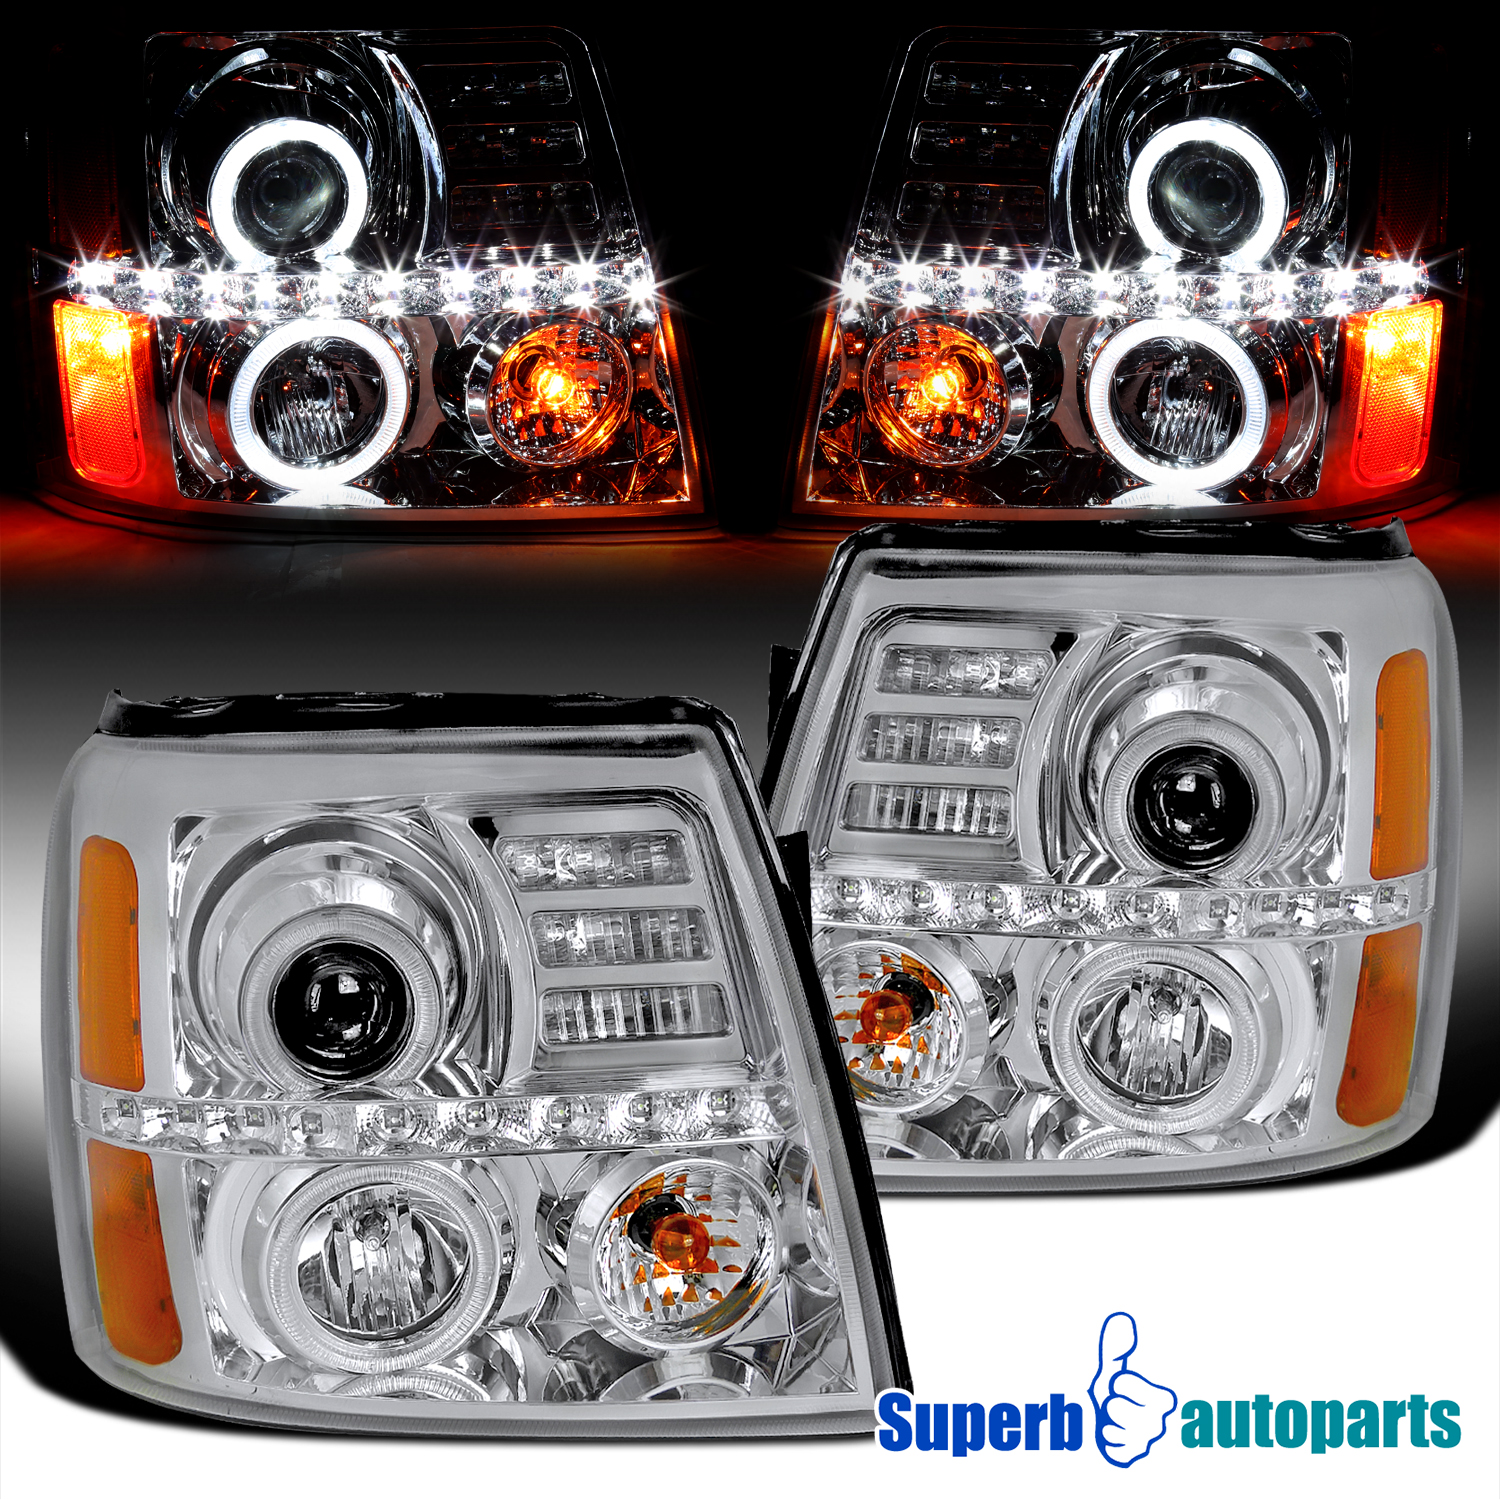 2002-2006 Cadillac Escalade LED Dual Halo Headlights Head